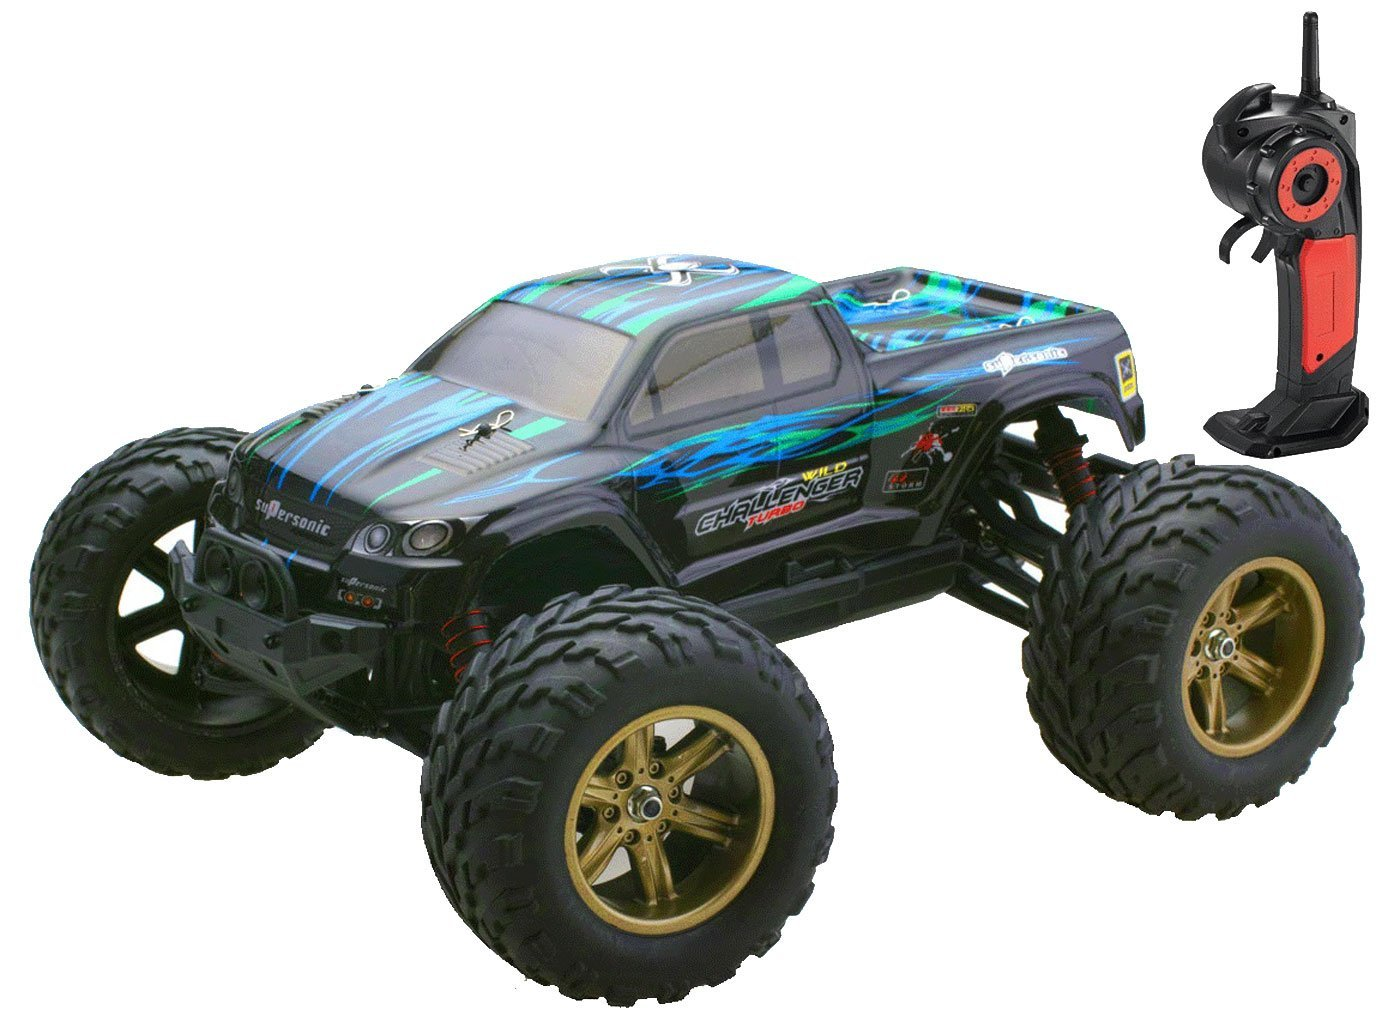 Bo Toys 1 12 Scale Electric RC Car Offroad 2.4Ghz 2WD High Speed 35 MPH Remote Controlled Truck Car by Bo-Toys